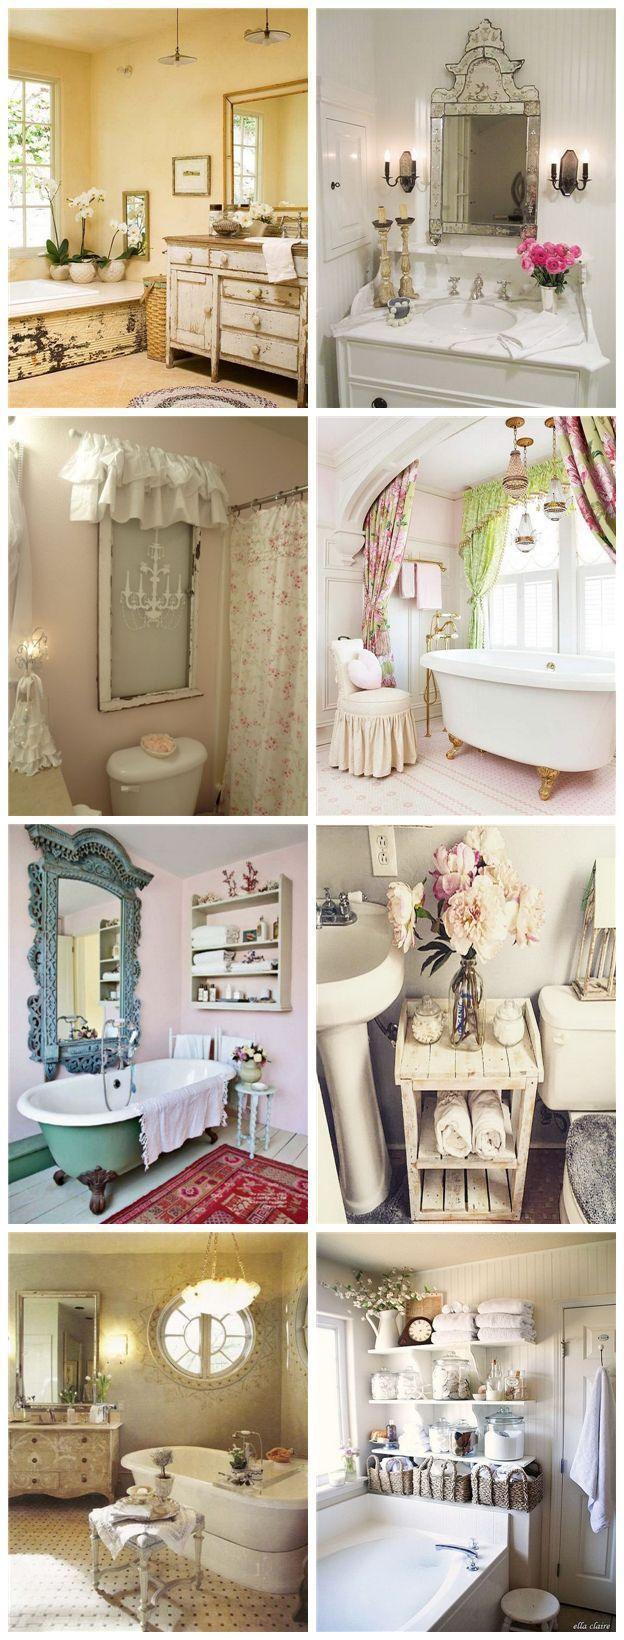 Awesome Shabby Chic Bathroom Ideas.